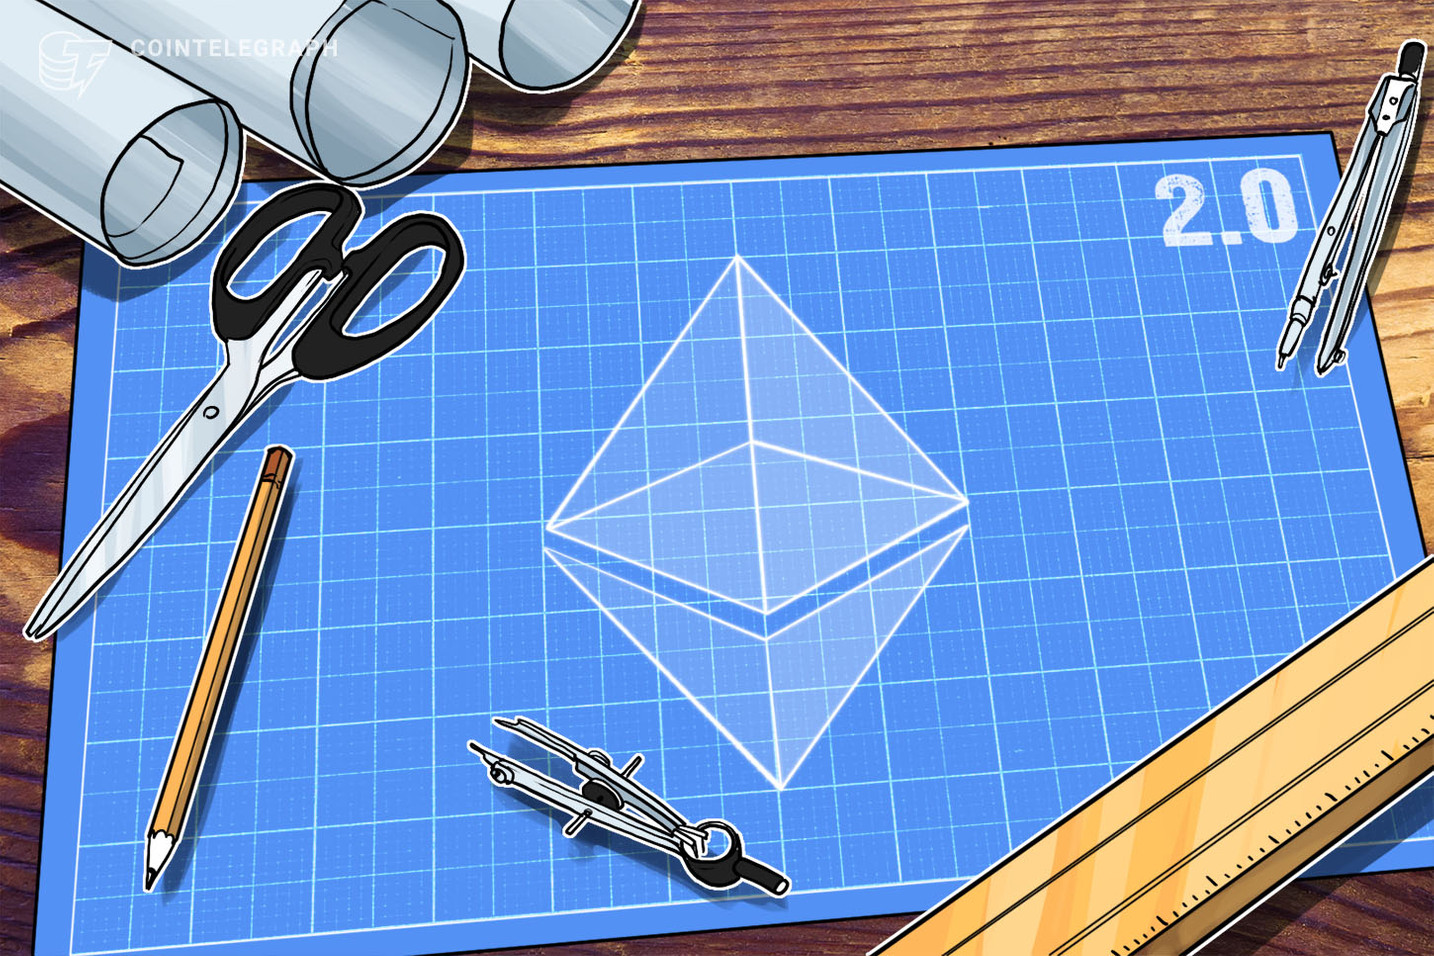 Analyst Predicts Ethereum 2.0 Staking Will Trigger a Bull Run